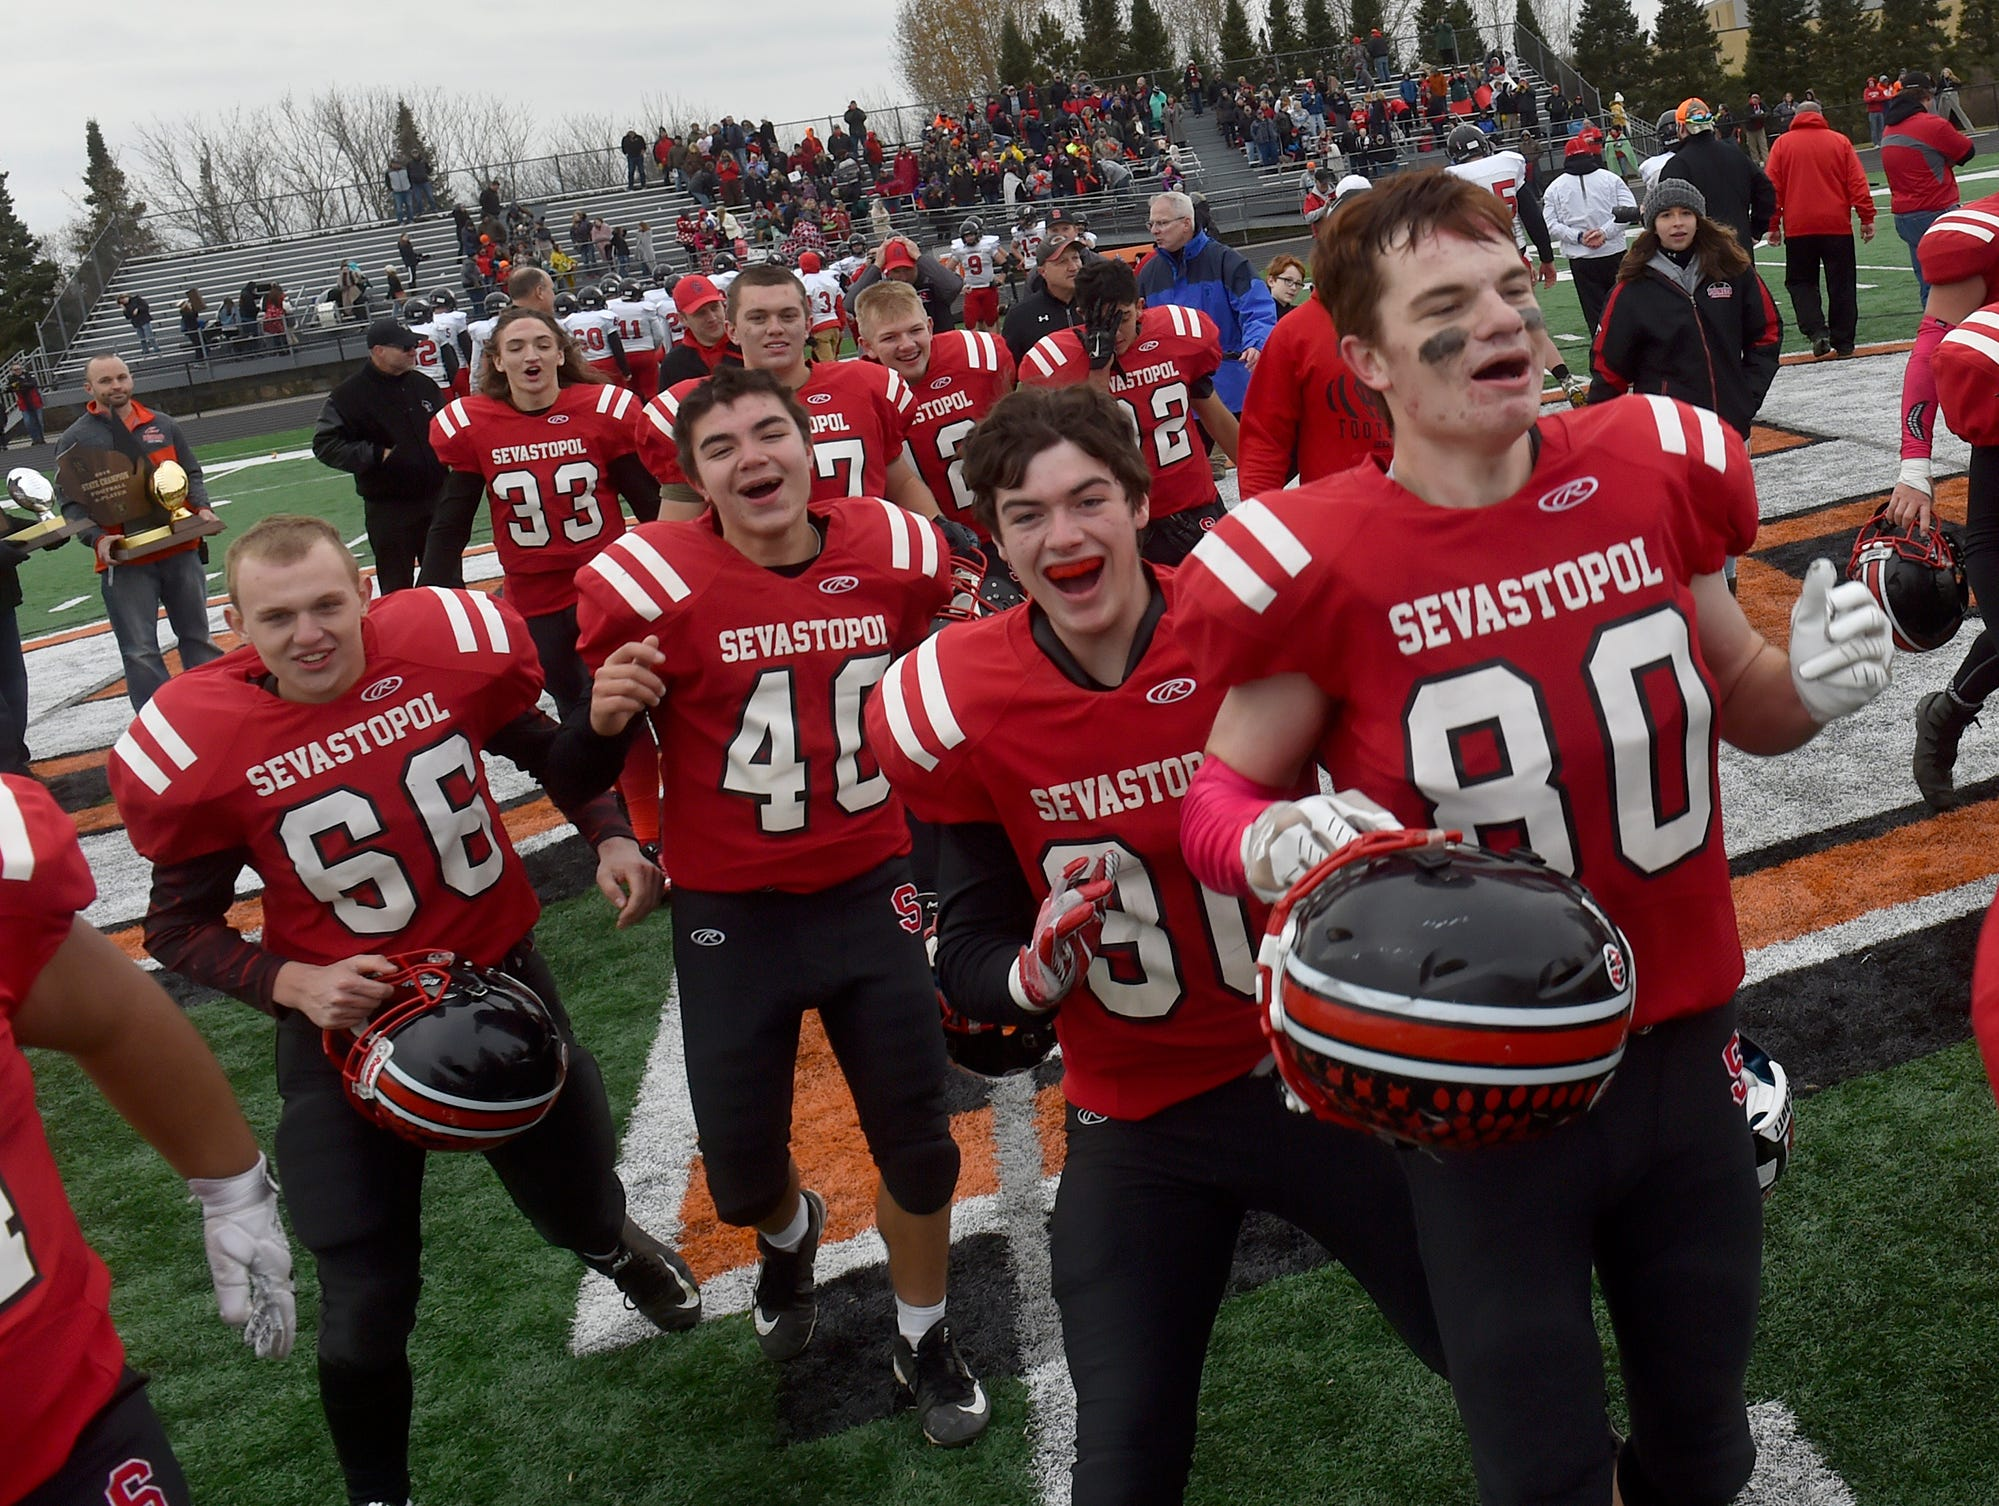 Celebrating the victory against Luck at the WIAA 8-Player State Championship game at Stanley-Boyd High School on Nov. 3, 2018. Tina M. Gohr/USA TODAY NETWORK-Wisconsin